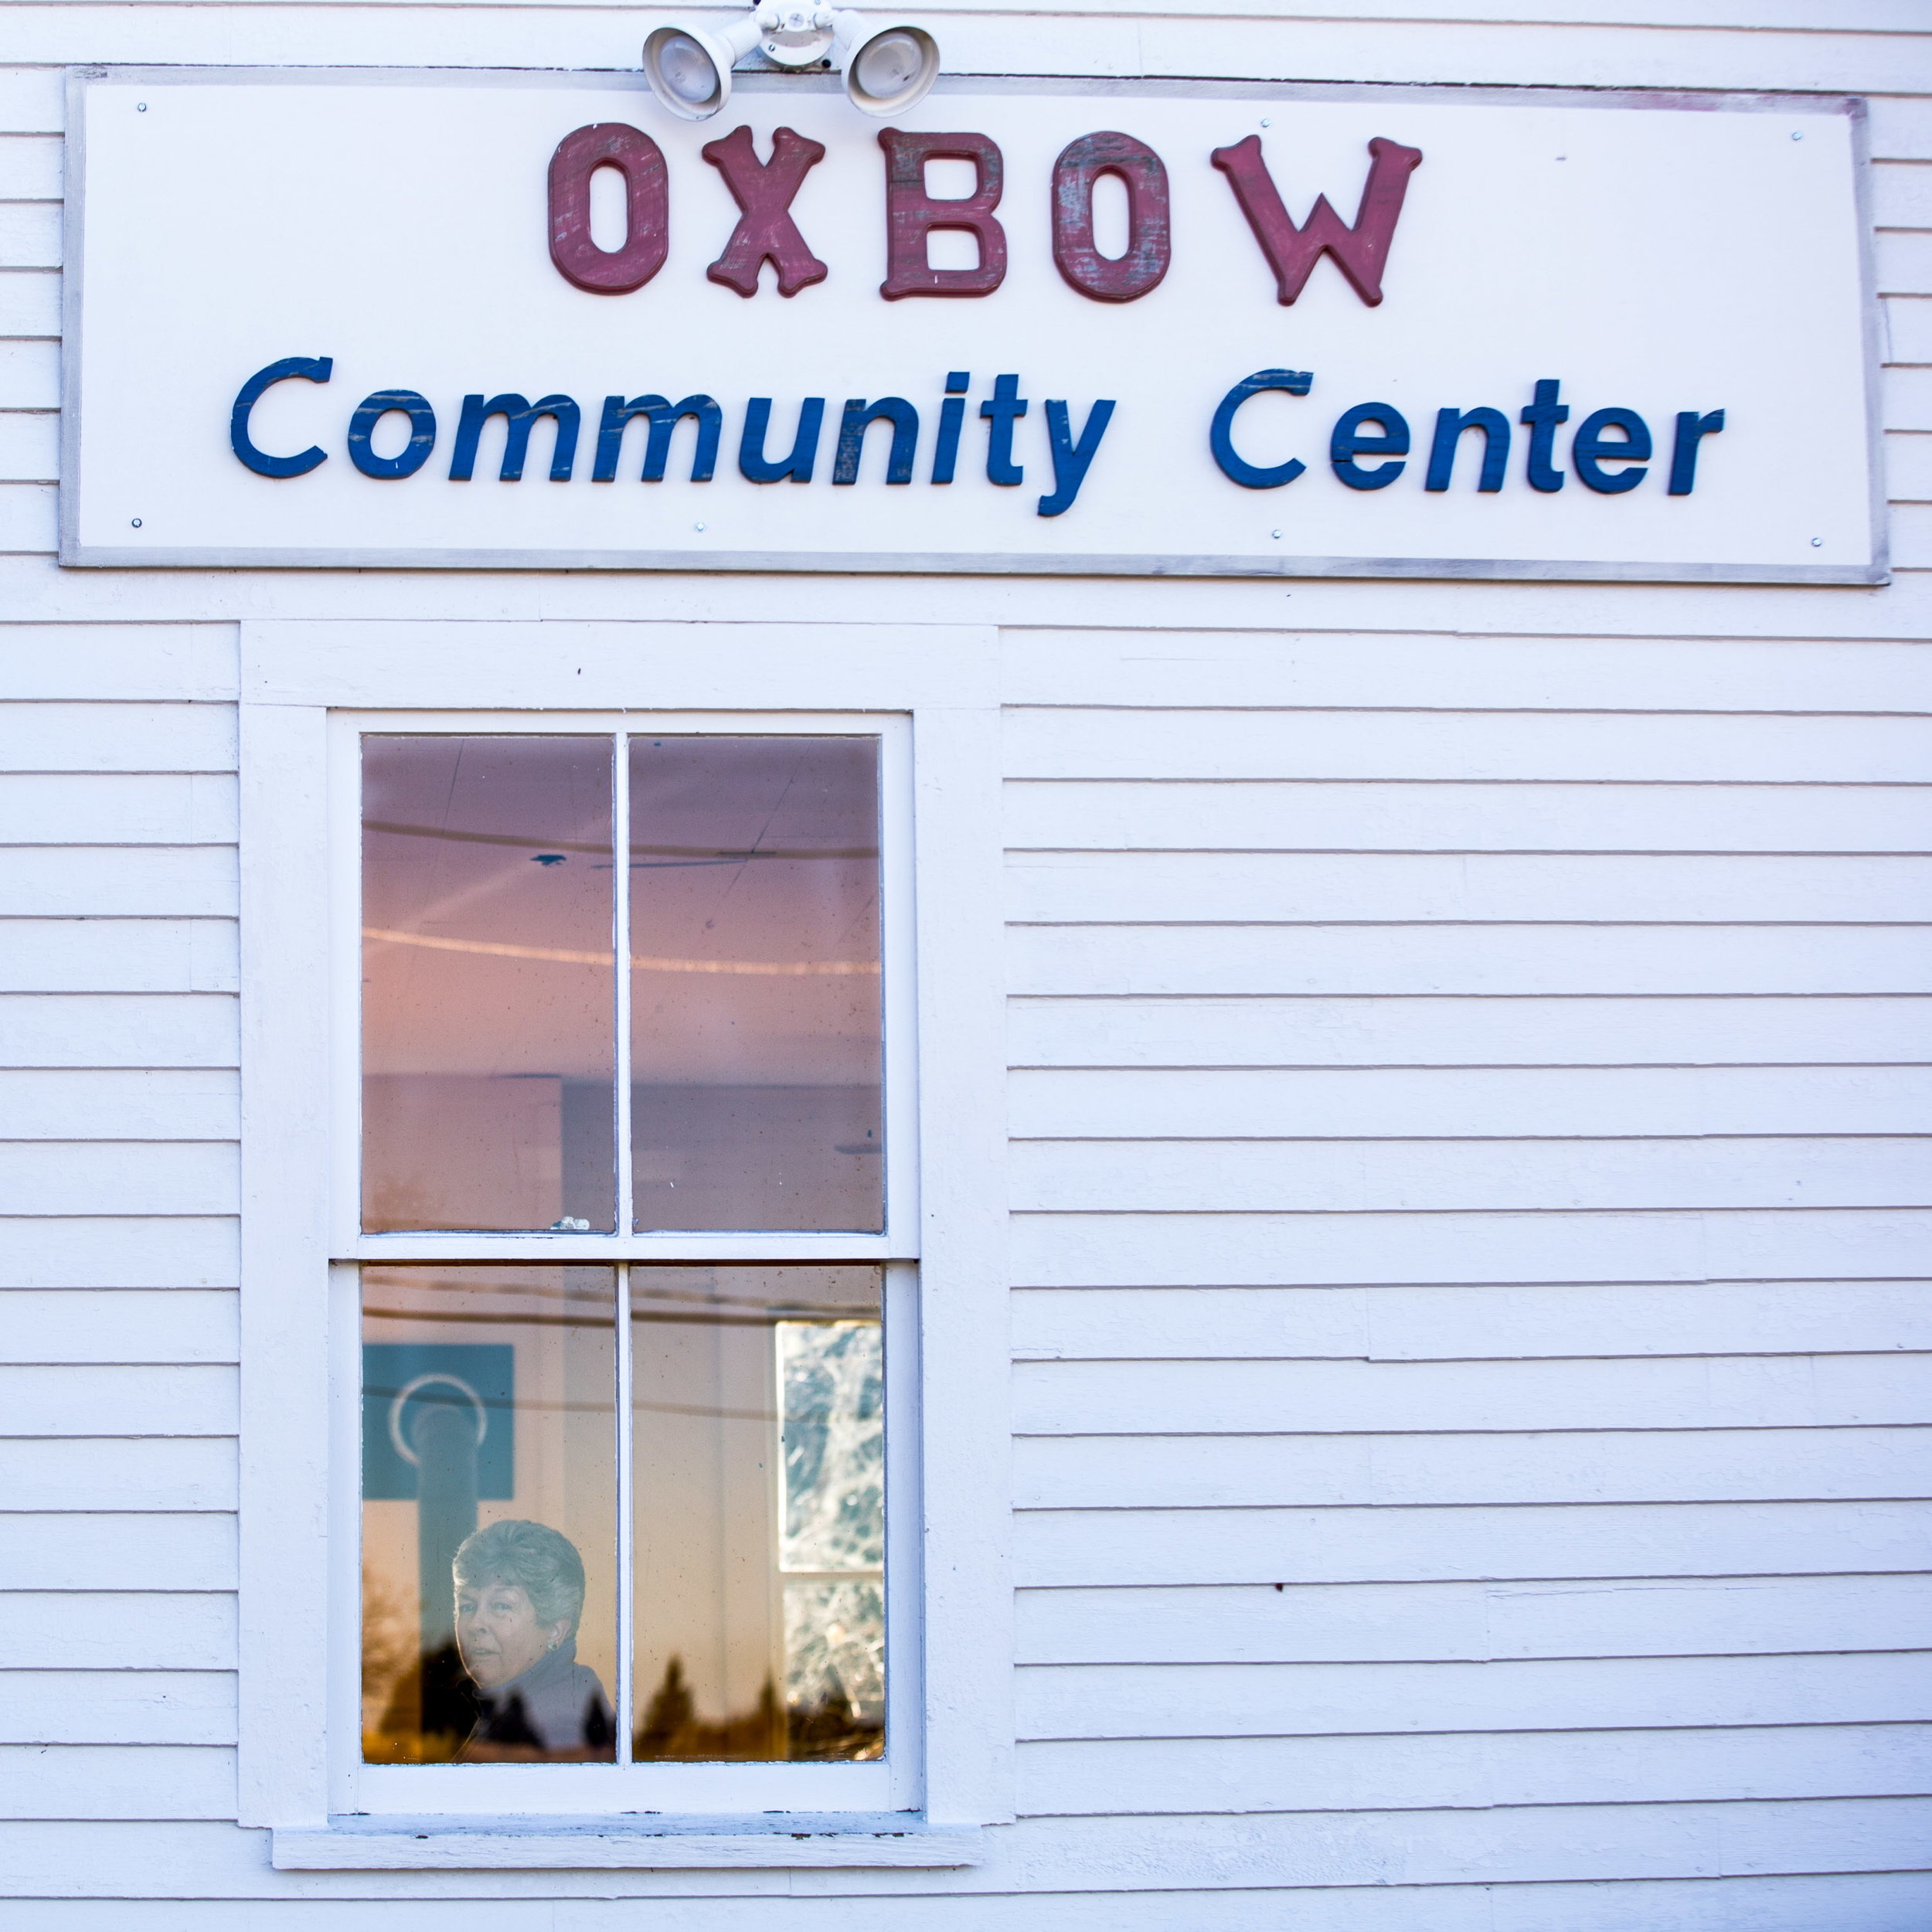 OXBOW, MAINE -- 11/08/2016 --Judy Gray peers out the front window of the Oxbow Community Center on election day, as the town votes for deorganization after years of petitioning and paperwork. The transition to a service economy has changed Maine's most rural towns. To preserve their sense of place, individual communities face a choice about their future: Accept a fate of likely continued decline, or adapt with no guarantee their efforts will work. (Micky Bedell   BDN)